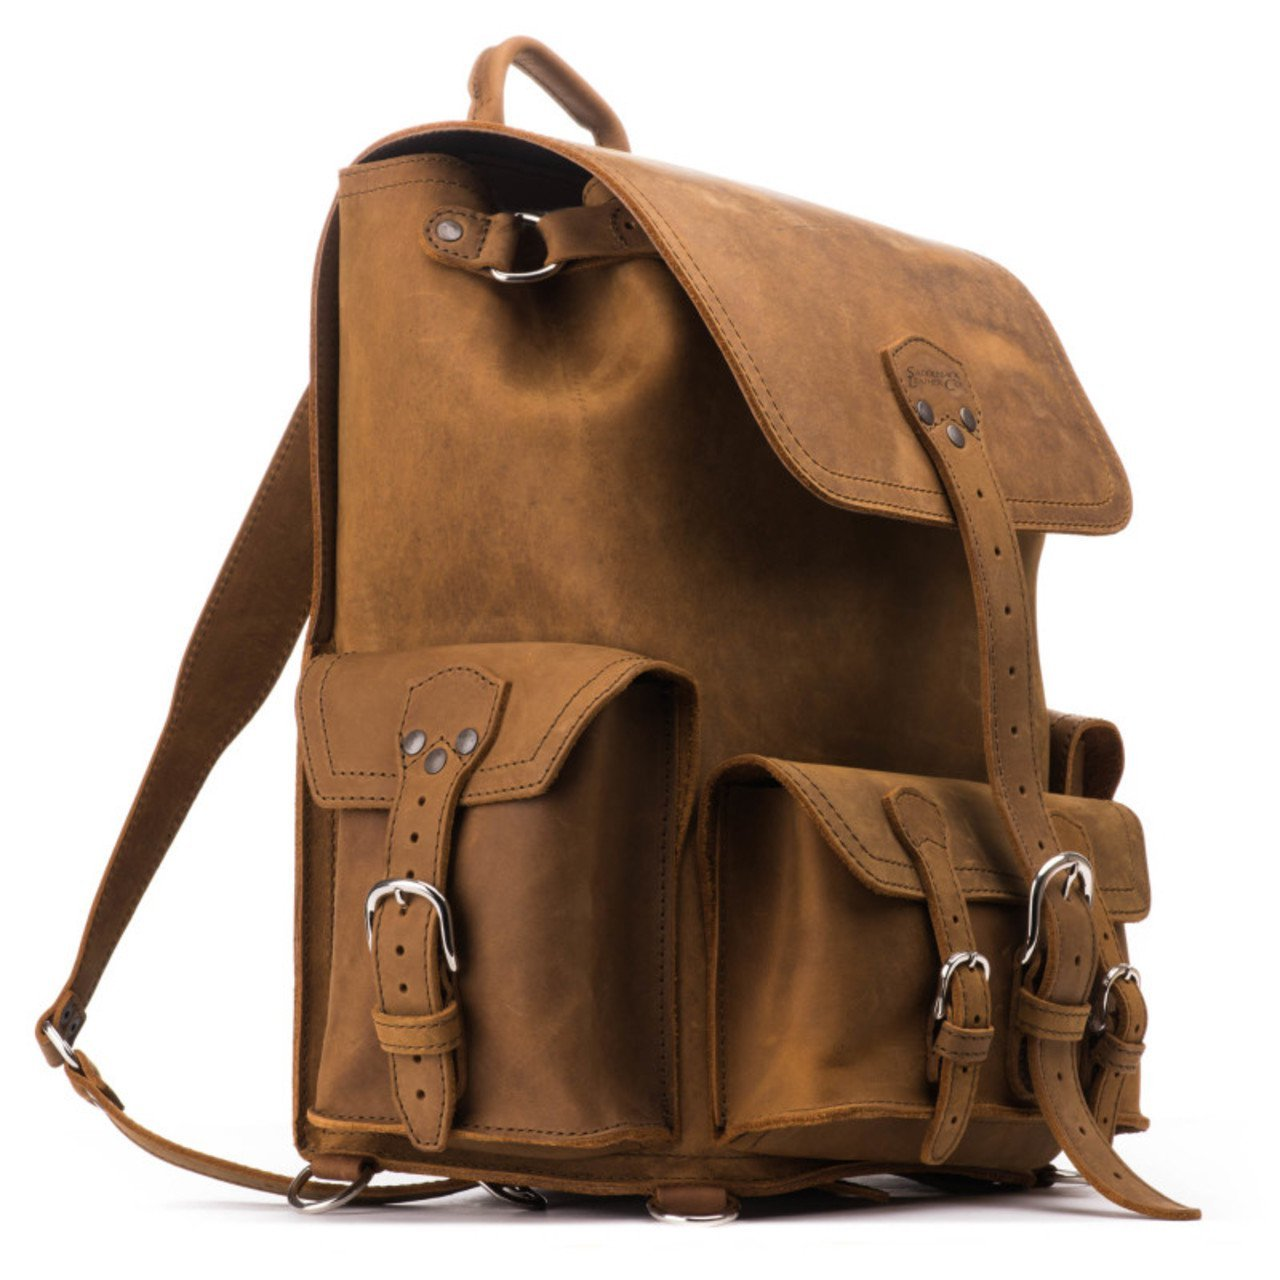 Saddleback Leather Front Pocket Backpack – Best For School, Business or Travel by Saddleback Leather Co.